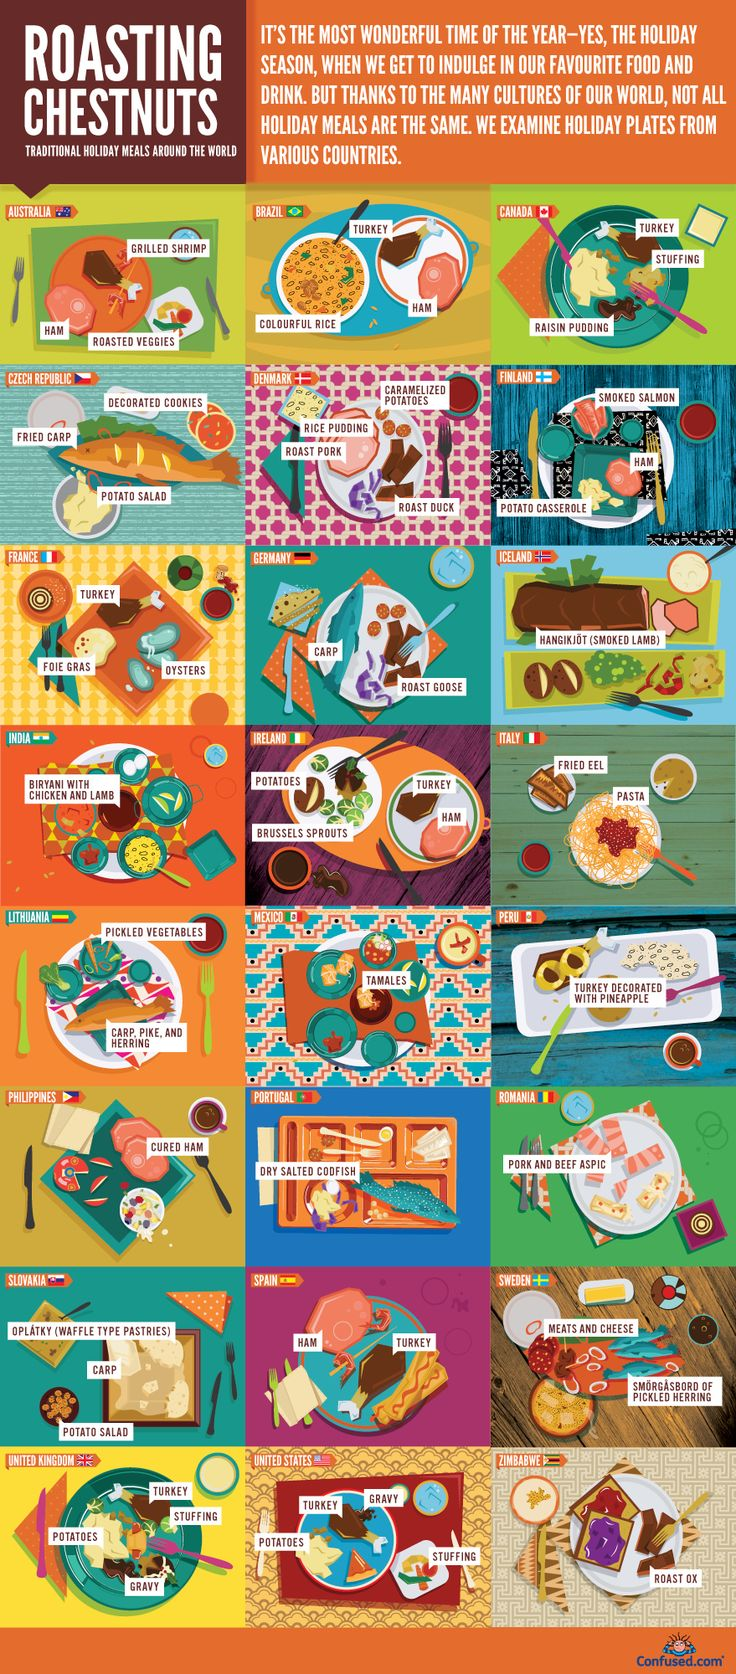 An Illustrated Guide To Holiday Meals Around The World. 38 Christmas's in Canada and I've never had raisin pudding but cool diagram none the less!